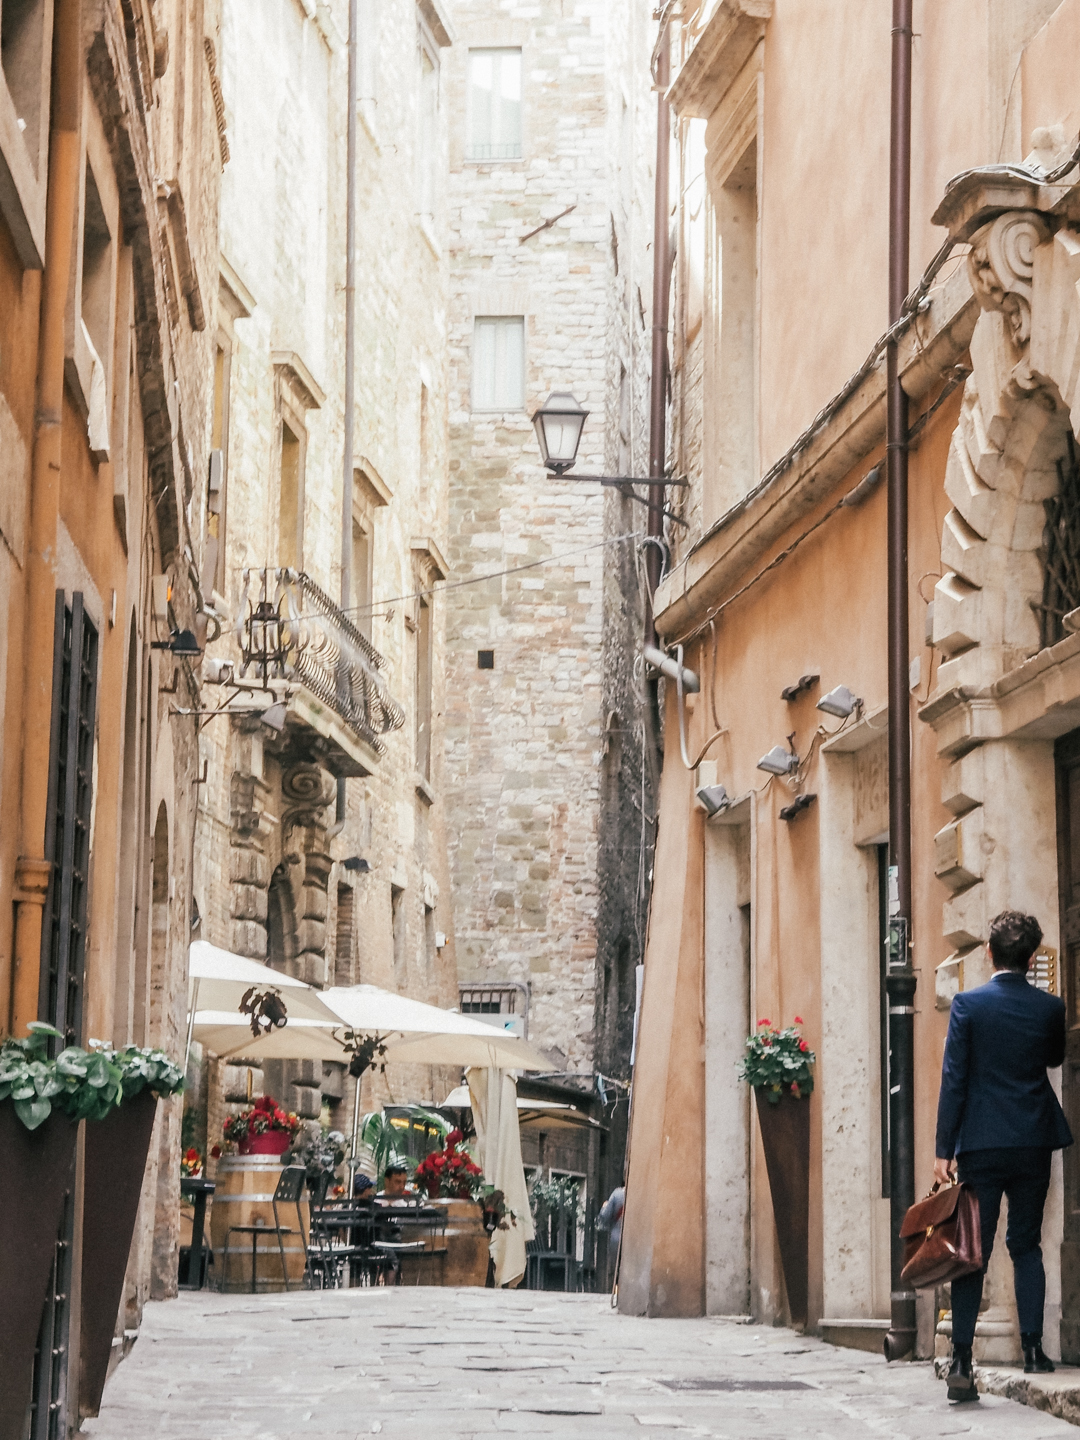 The streets of Perugia, Italy